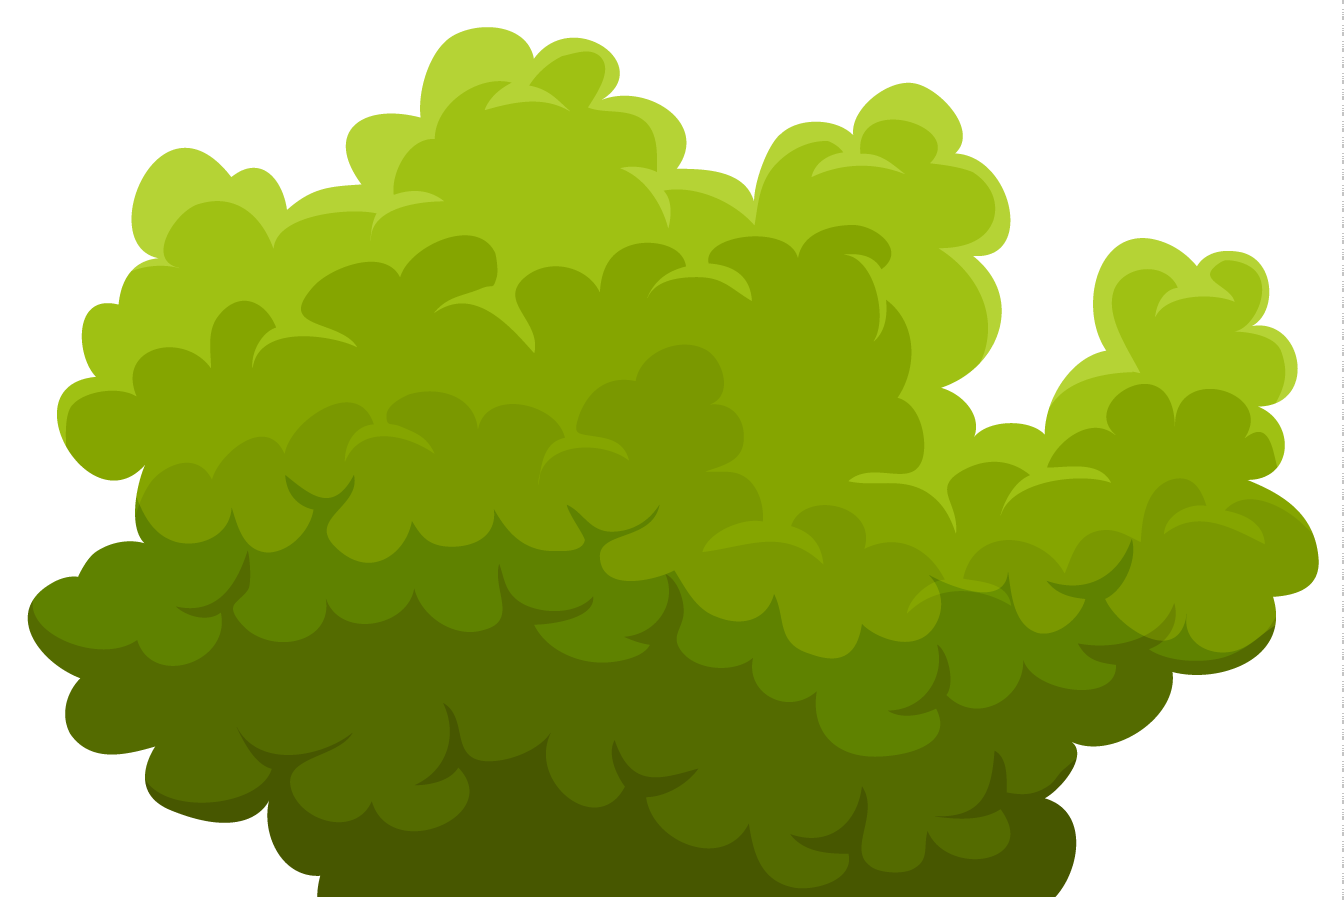 Bush clipart #20, Download drawings